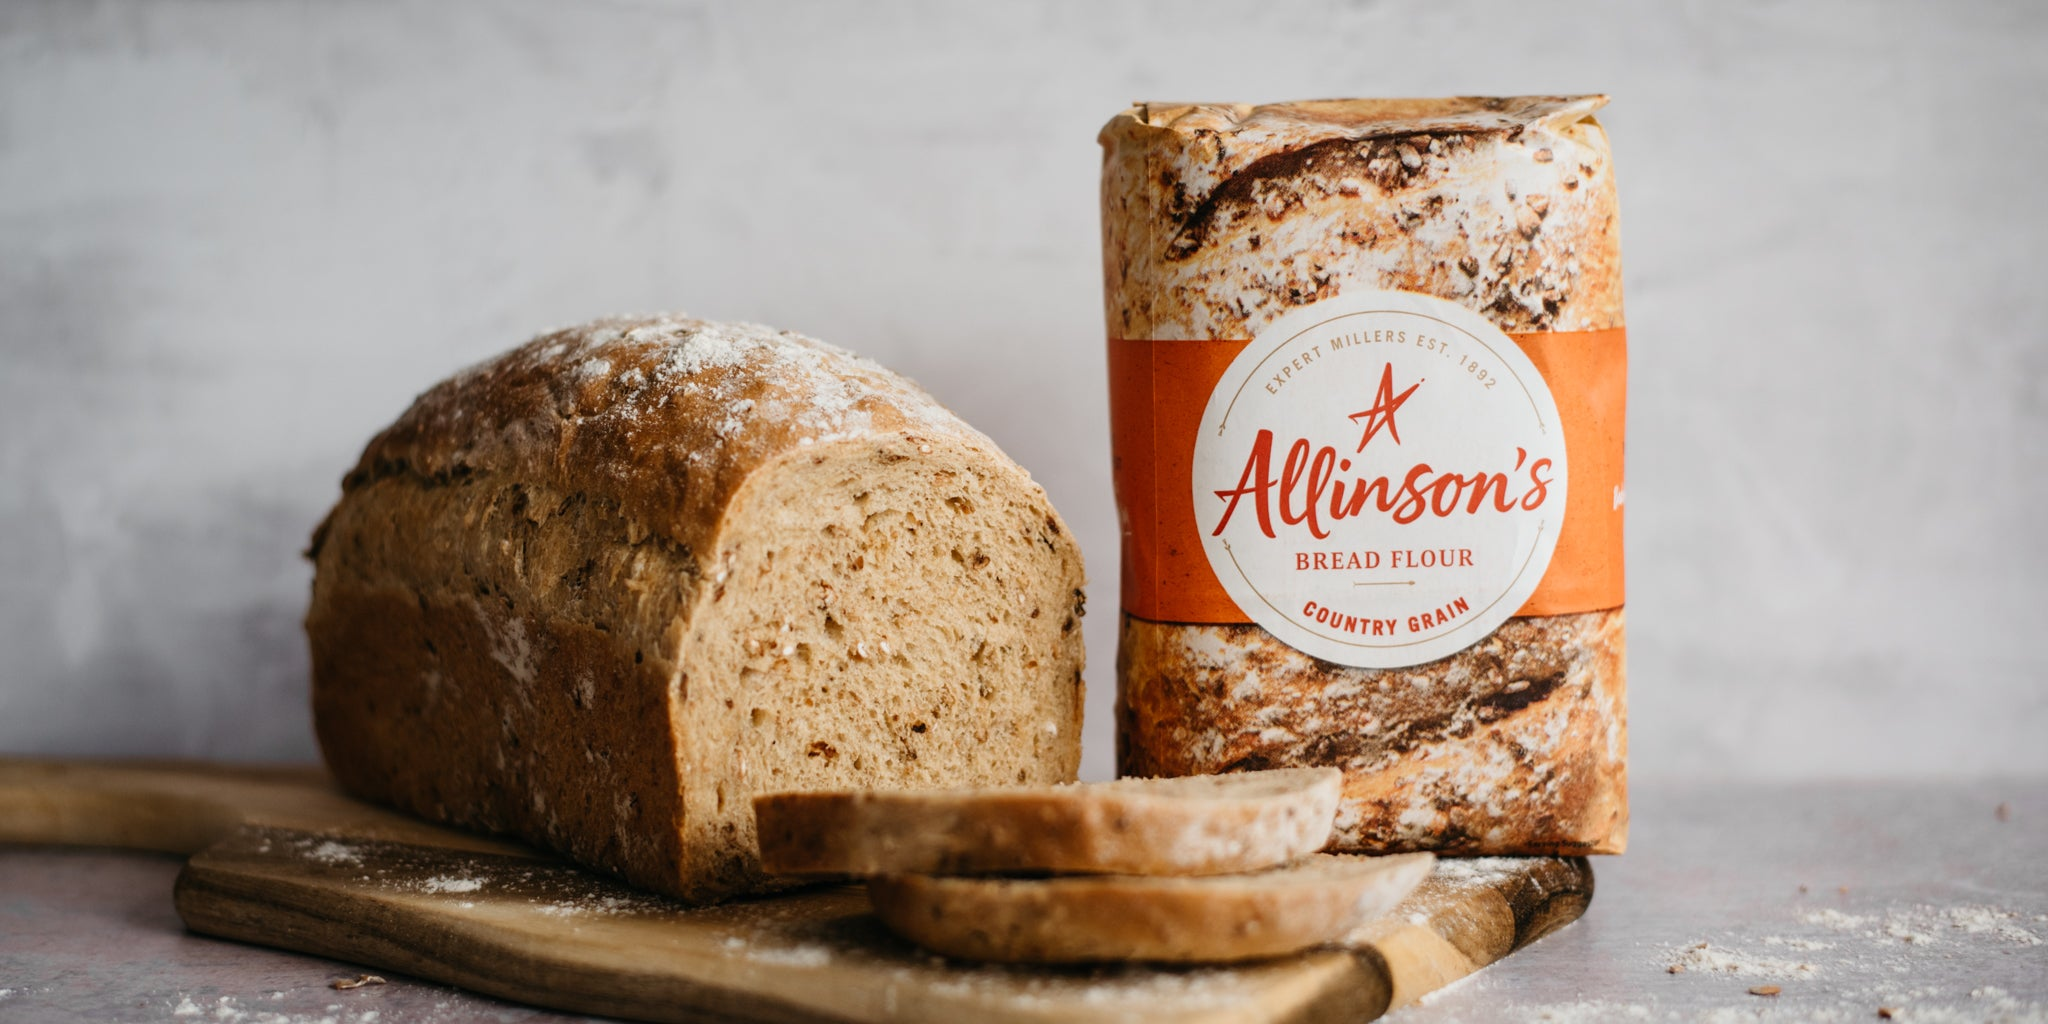 Farmhouse Country Grain Loaf sliced on a serving board, next to a bag of Allinson's Country Grain flour